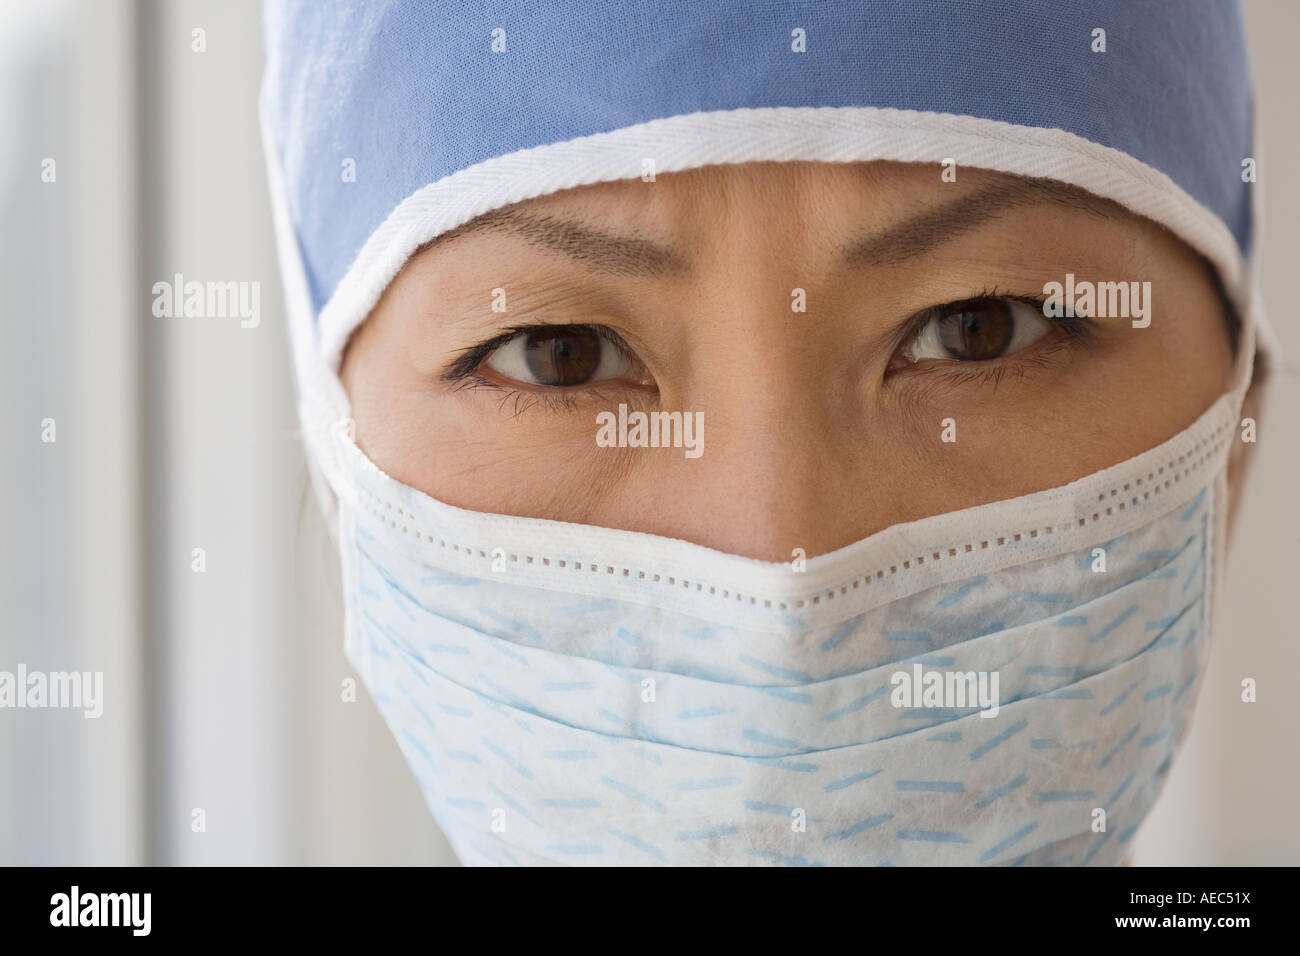 Close up of Asian female doctor wearing surgical mask Stock Photo